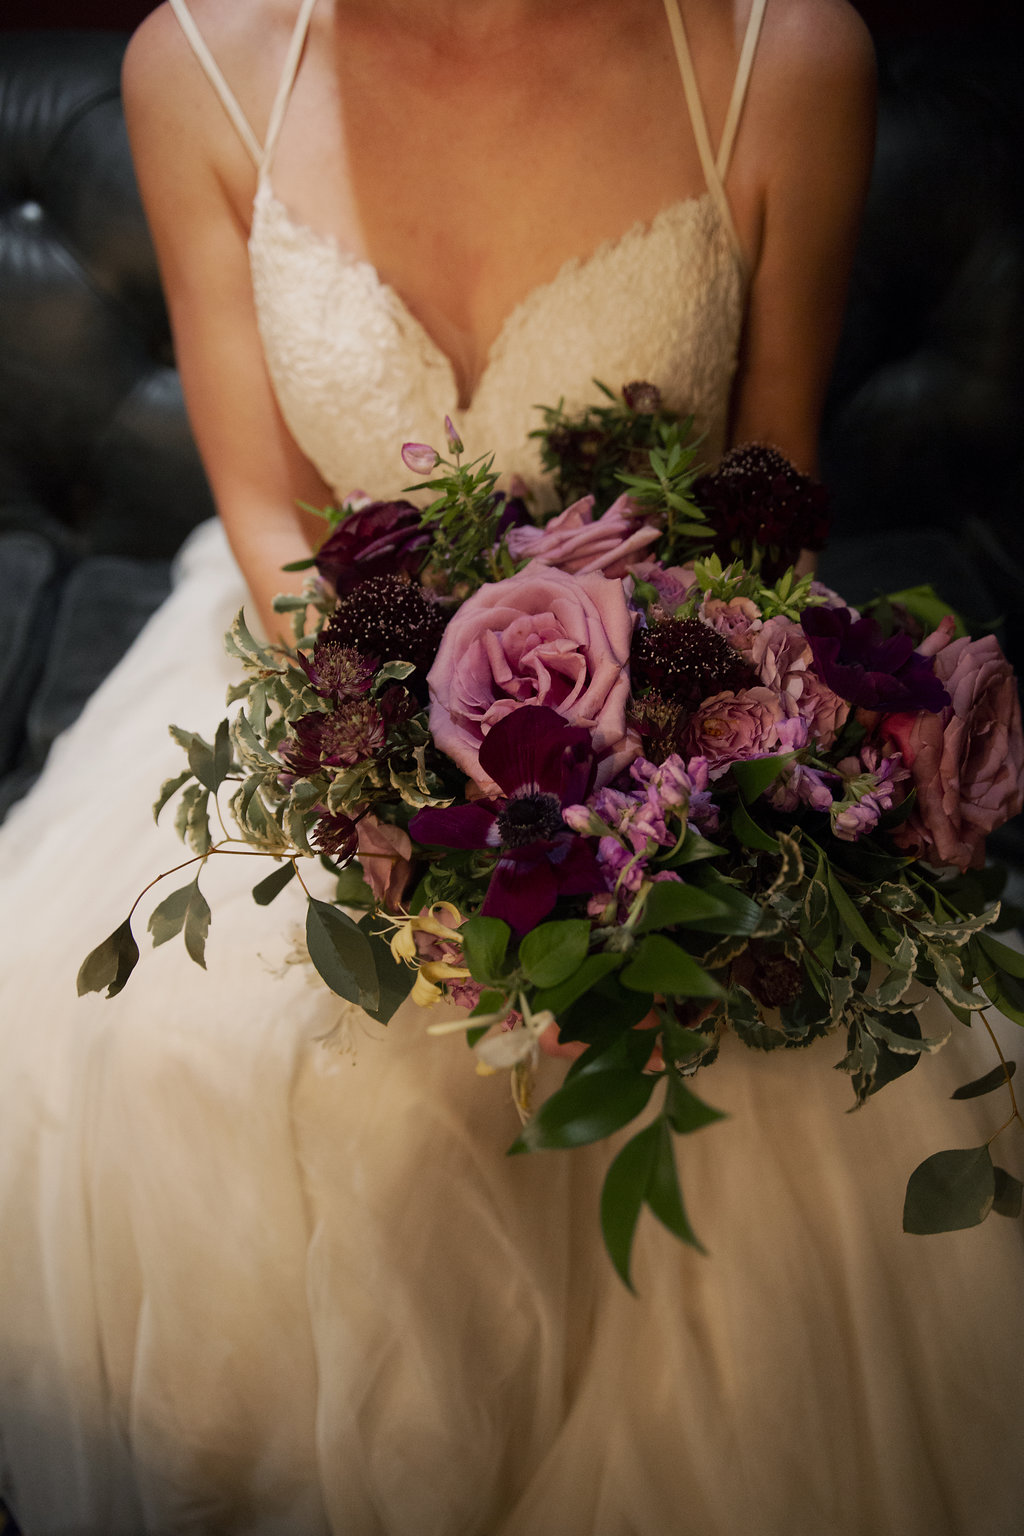 Amazing bridal bouquet by Whats Up Buttercup features purple roses and soft greenery